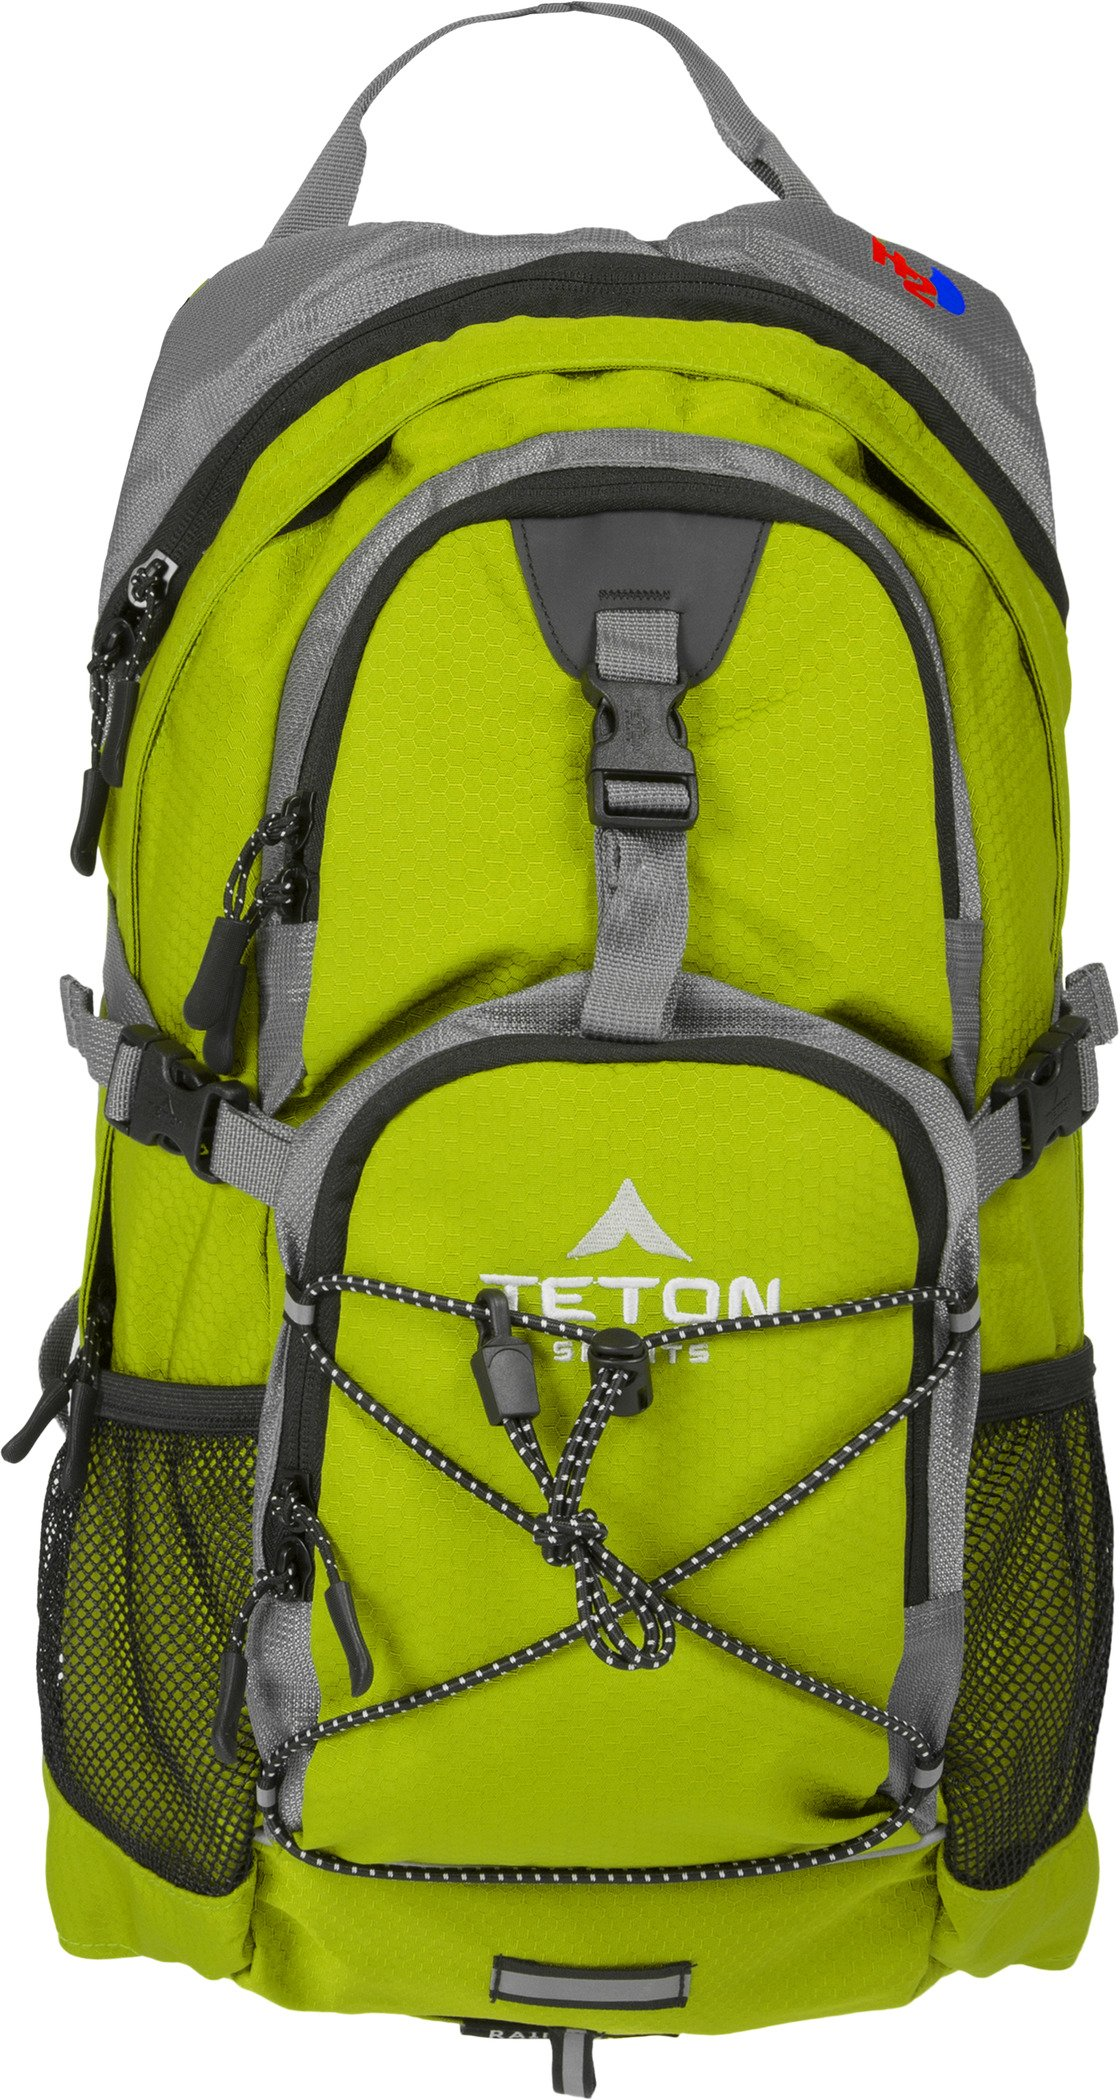 TETON Sports Oasis 1100 Hydration Pack | Free 2-Liter Hydration Bladder | Backpack design great for Hiking, Running, Cycling, and Climbing | Bright Green by TETON Sports